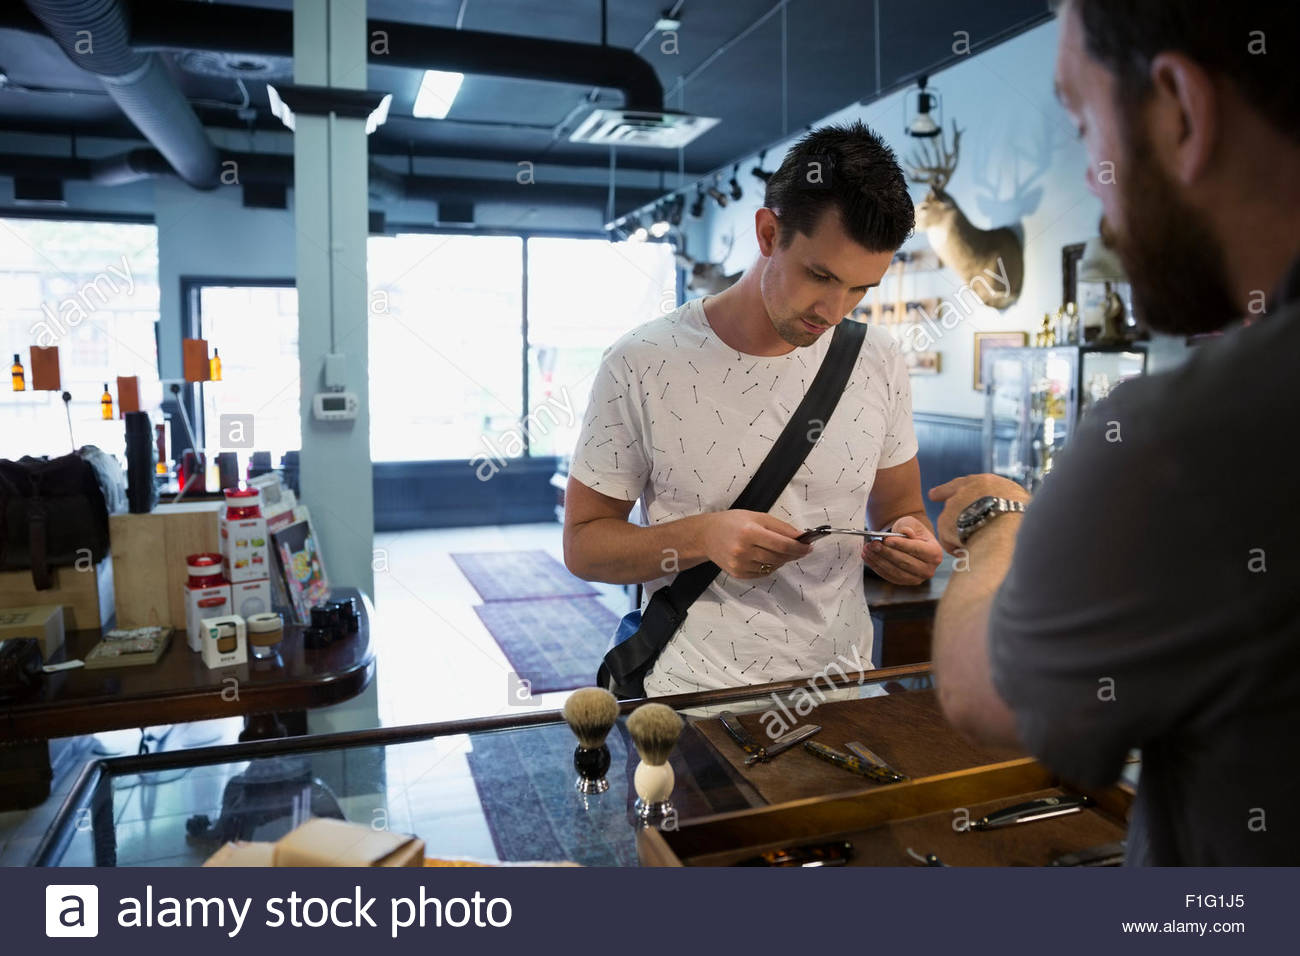 Man shopping for pocketknife in shop - Stock Image